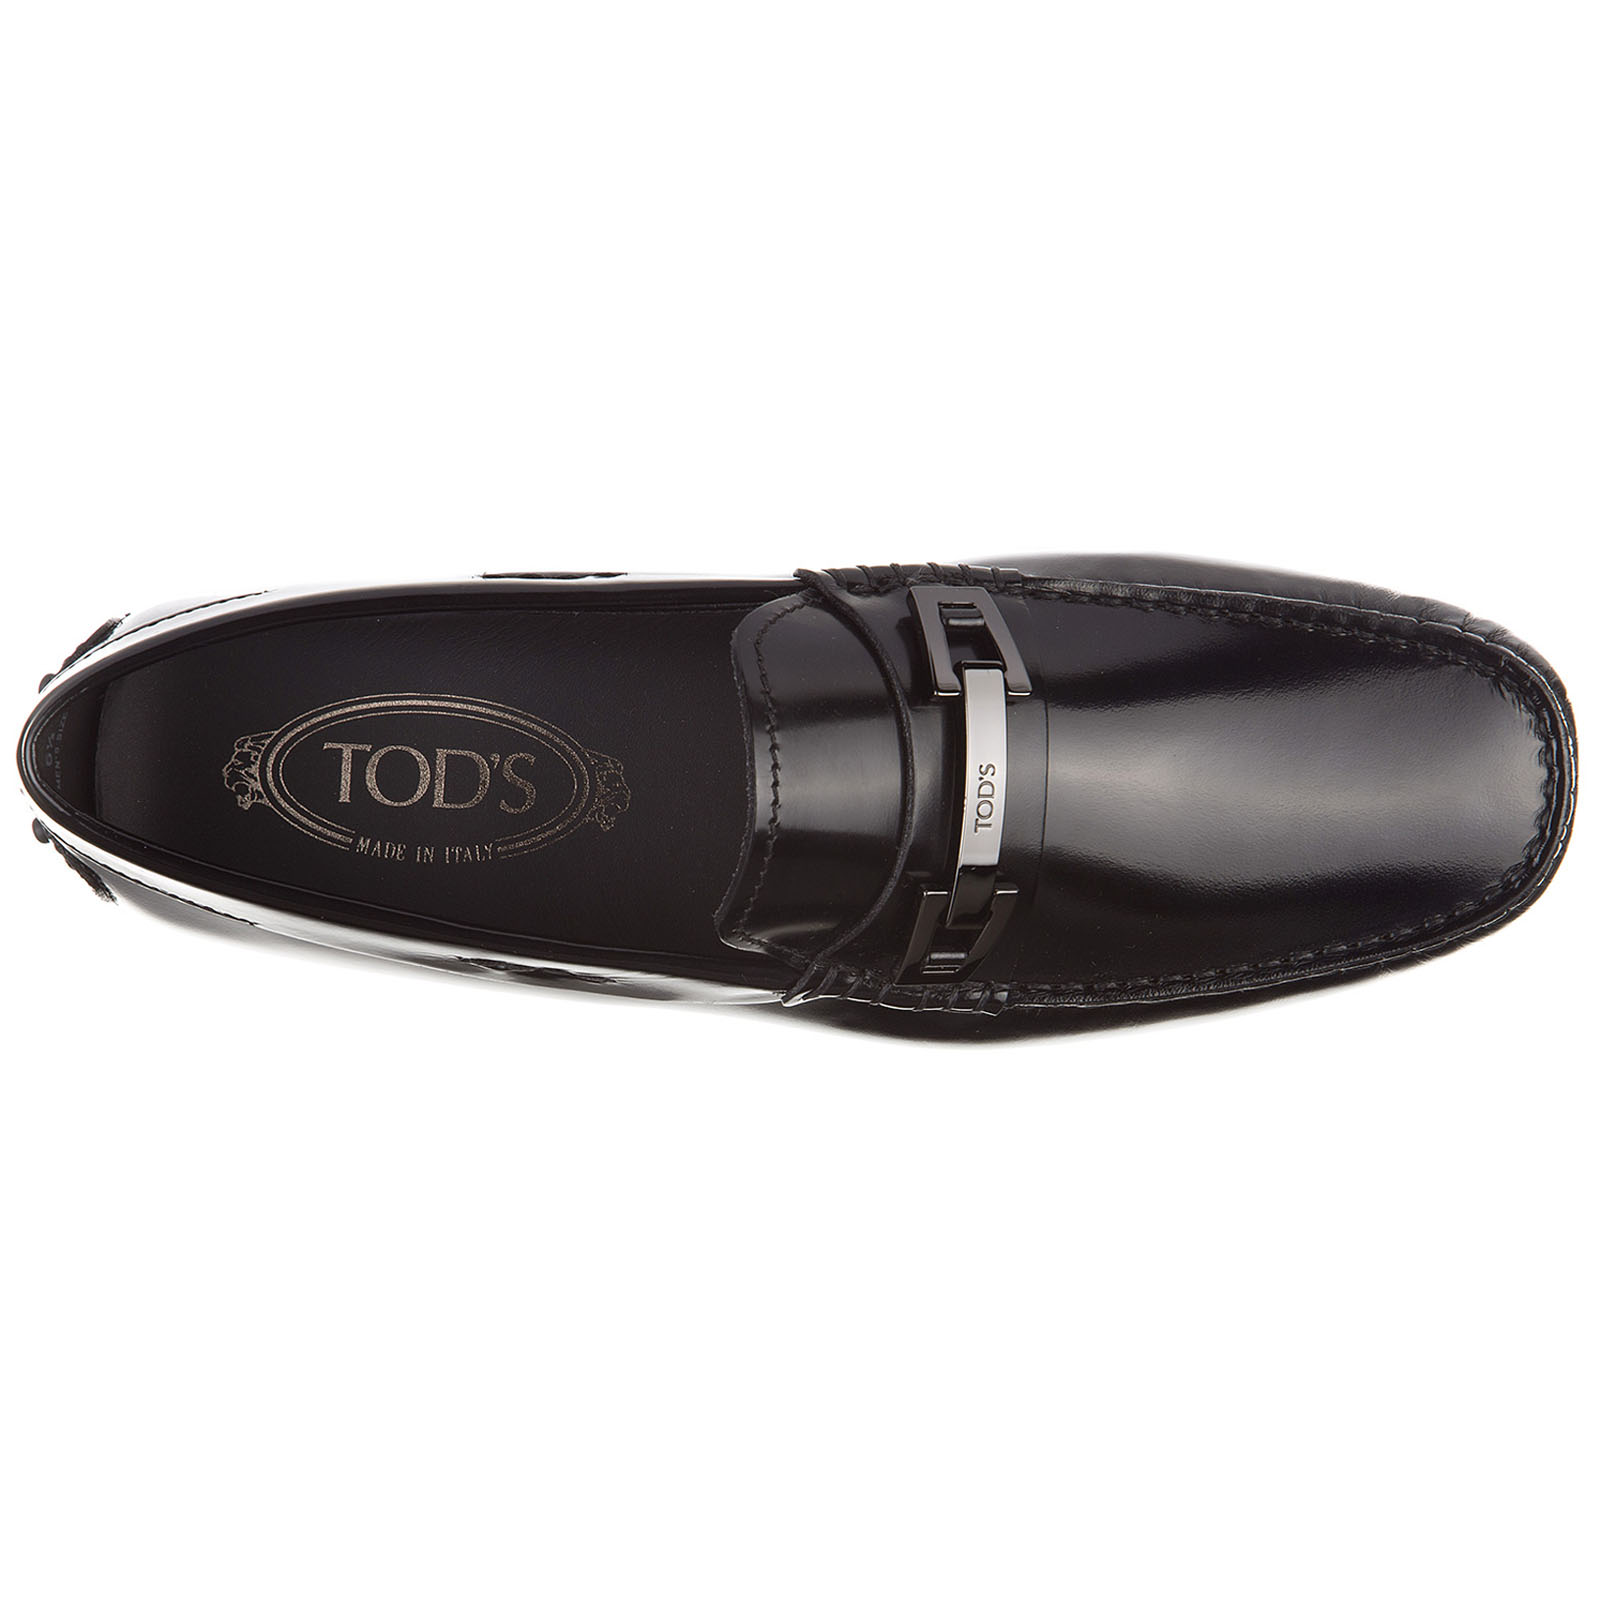 Men's leather loafers moccasins  clamp